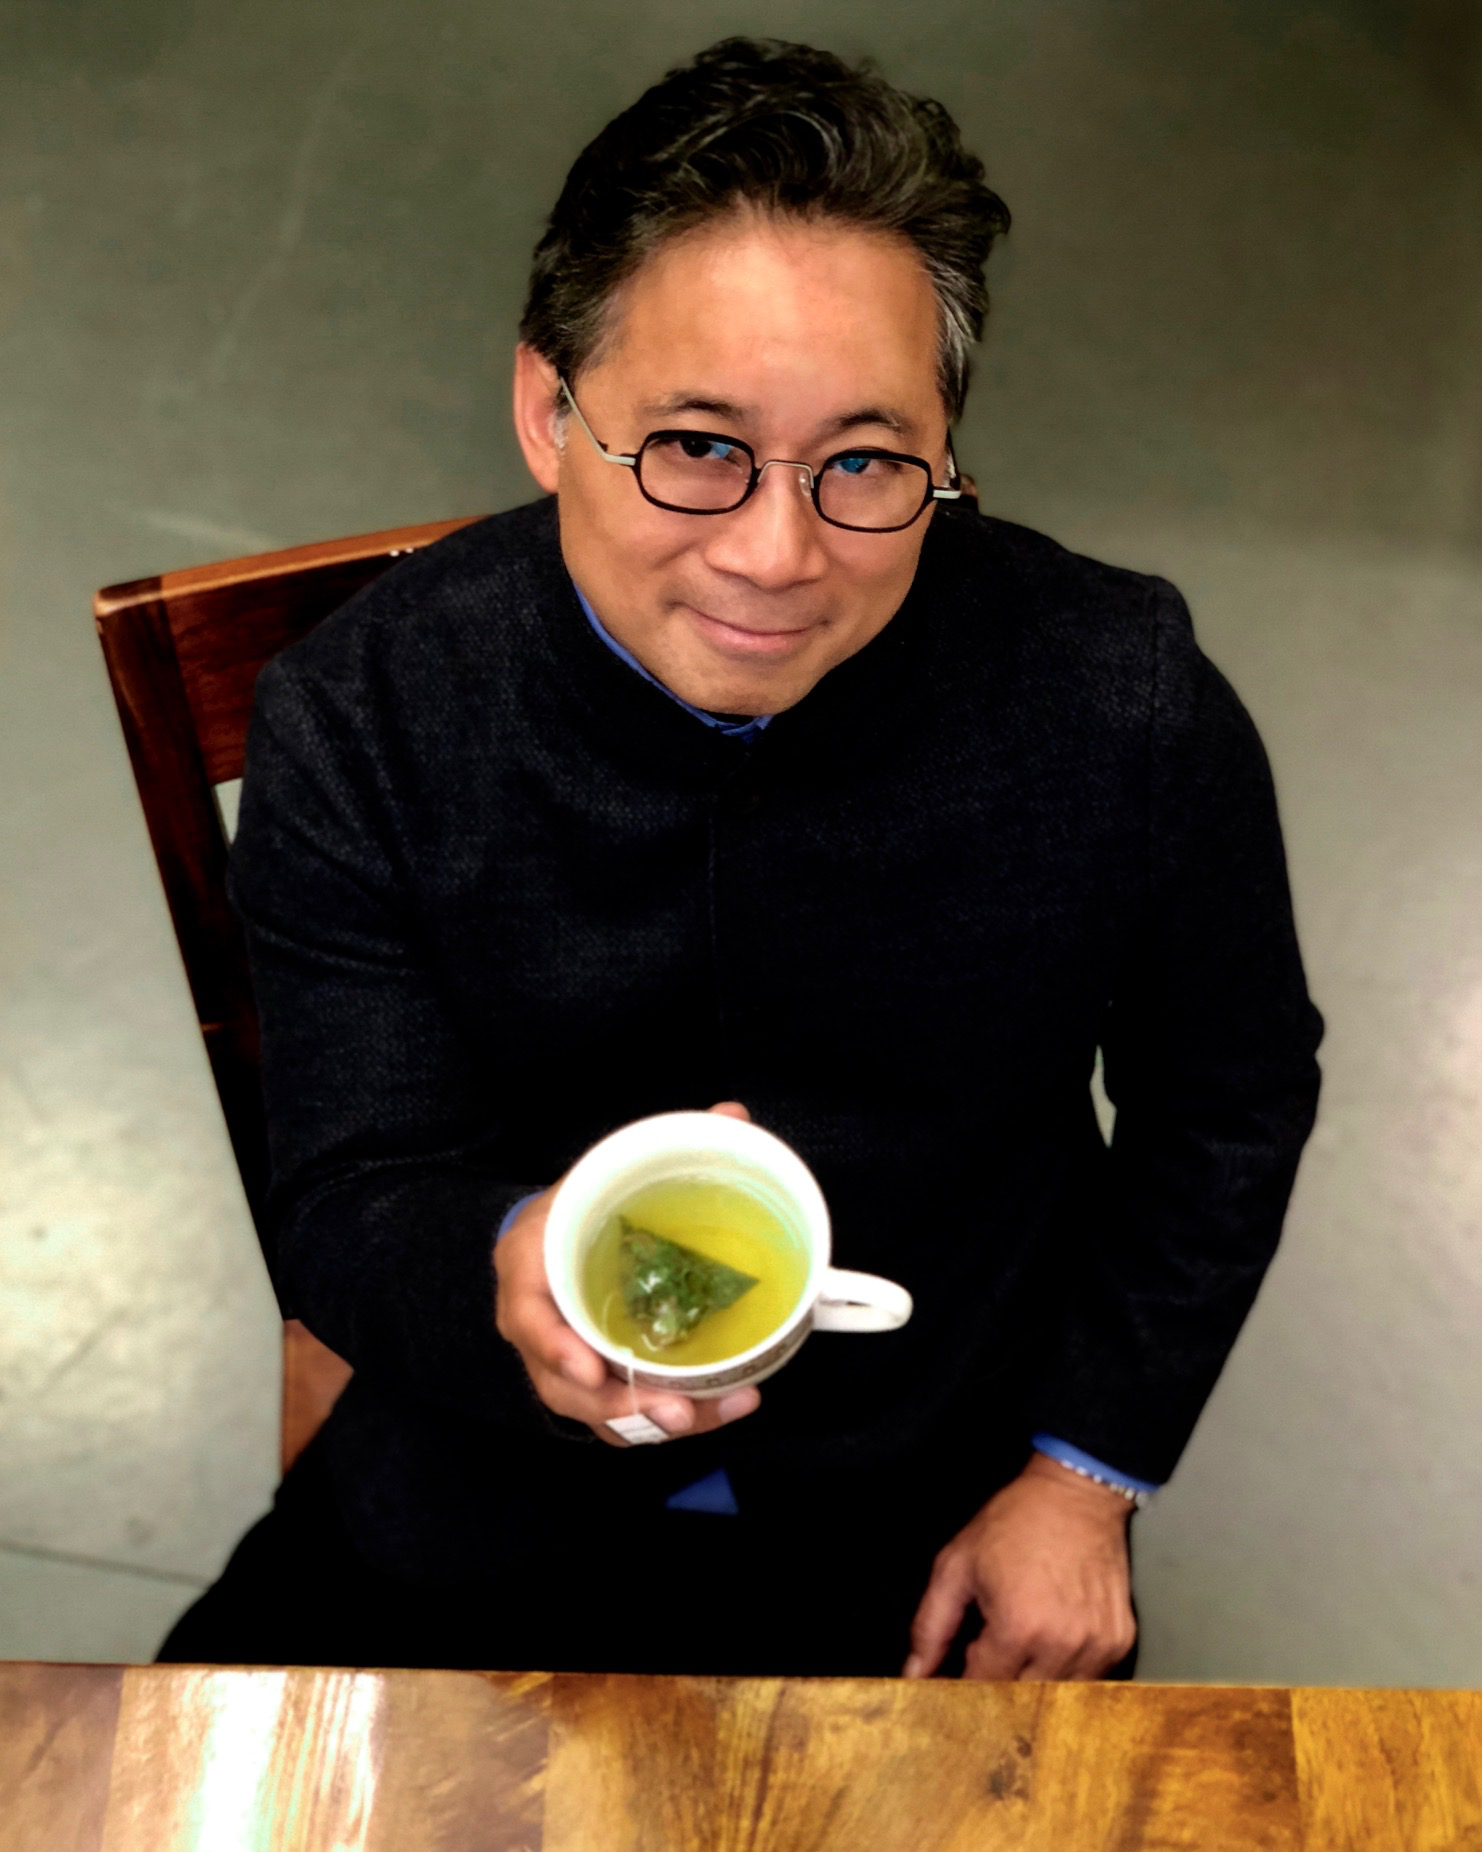 Dr. William Li, Harney & Sons Teafluencer